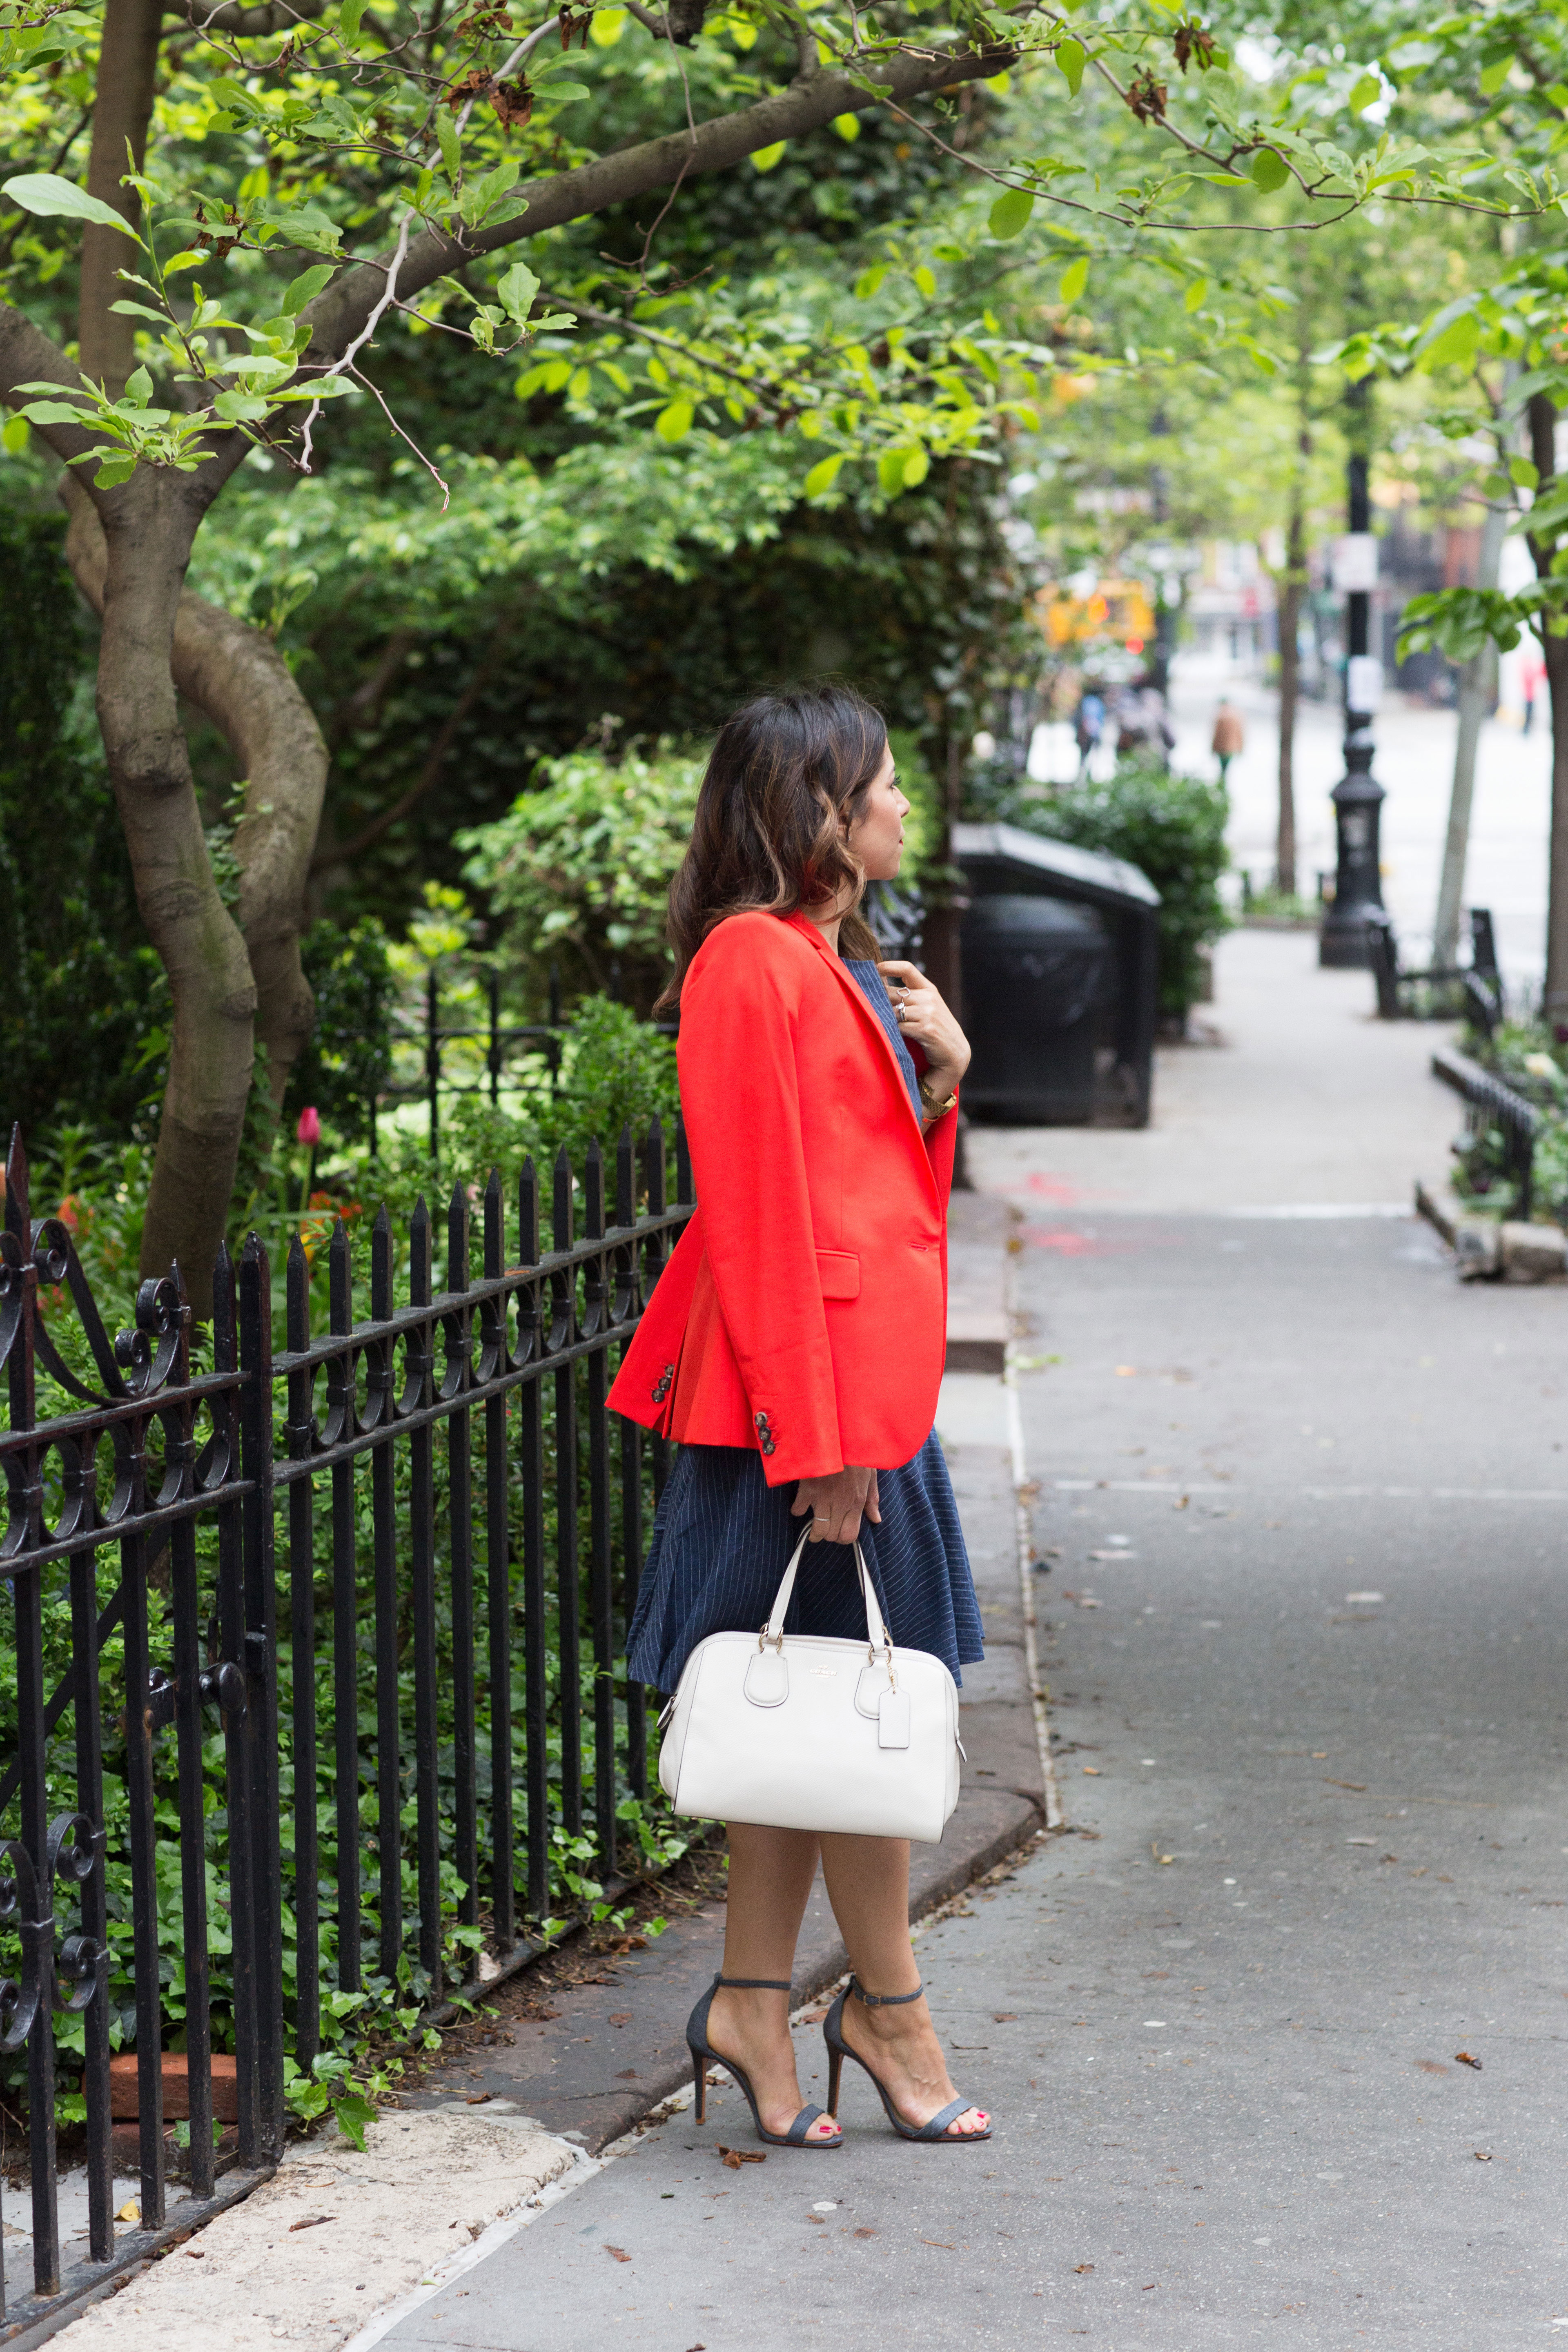 workwear-outfit-for-spring-wearing-Banana-Republic-Red-Blazer-with-denim-dress-and-white-coach-purse5